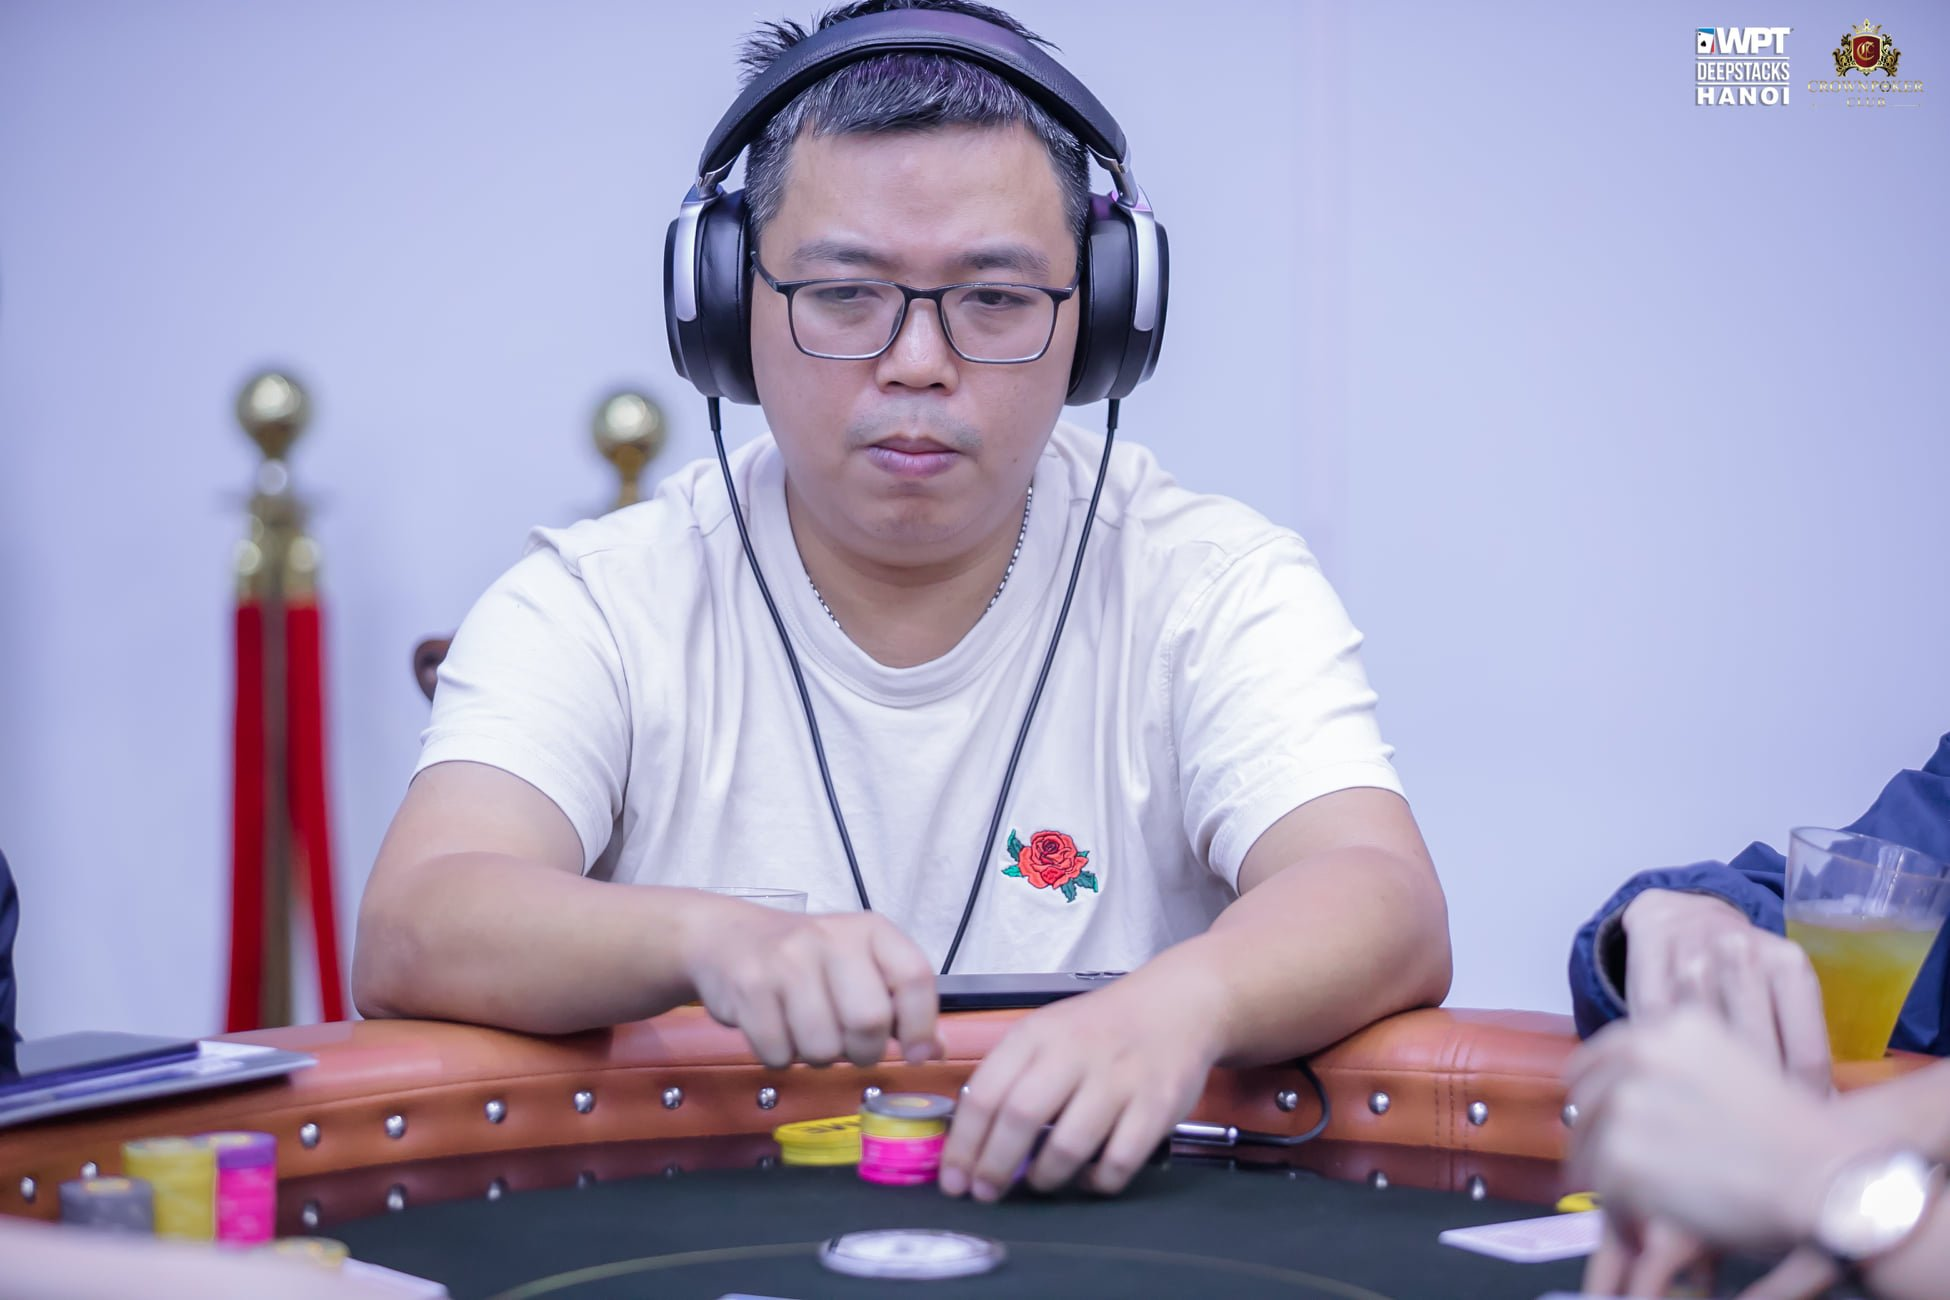 WPTDeepStacks Hanoi: Warm Up Event draws 357, smashes guarantee; 45 players advance to Day 2; Superstack & Single Day High Roller up next